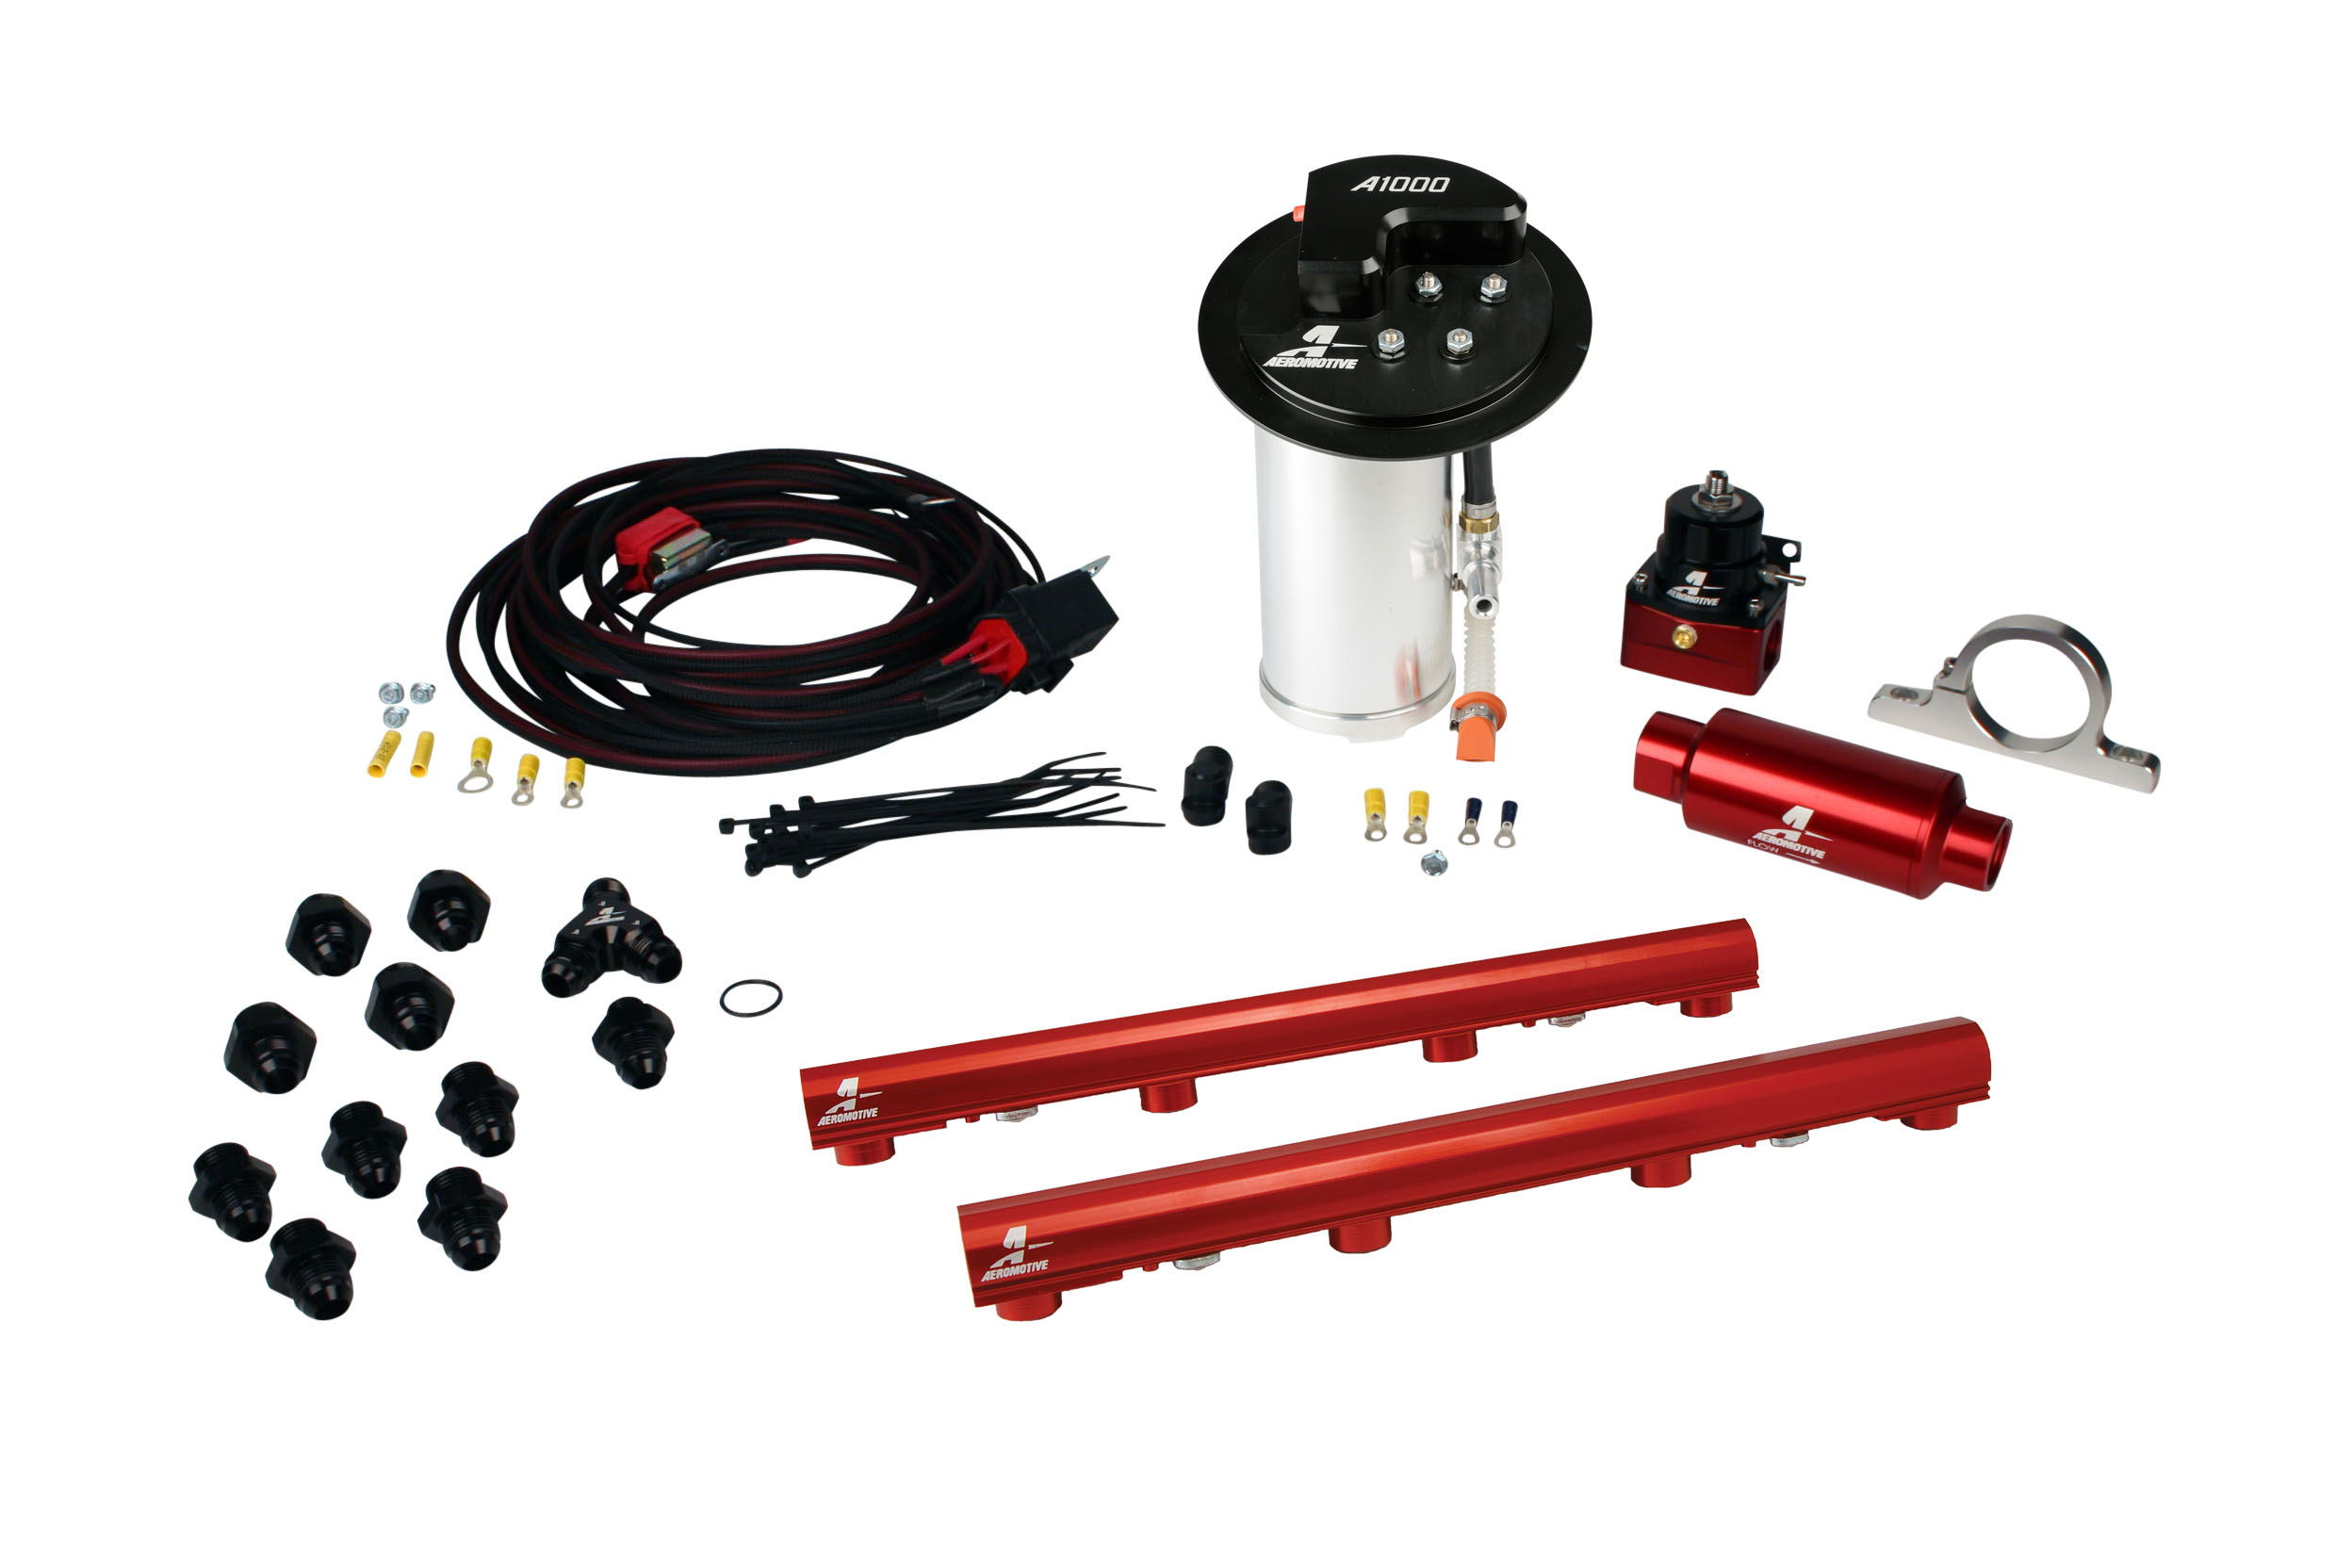 2010-2017 Ford Mustang GT Aeromotive Stealth A1000 Race Fuel System w/4.6L 3-Valve Fuel Rail